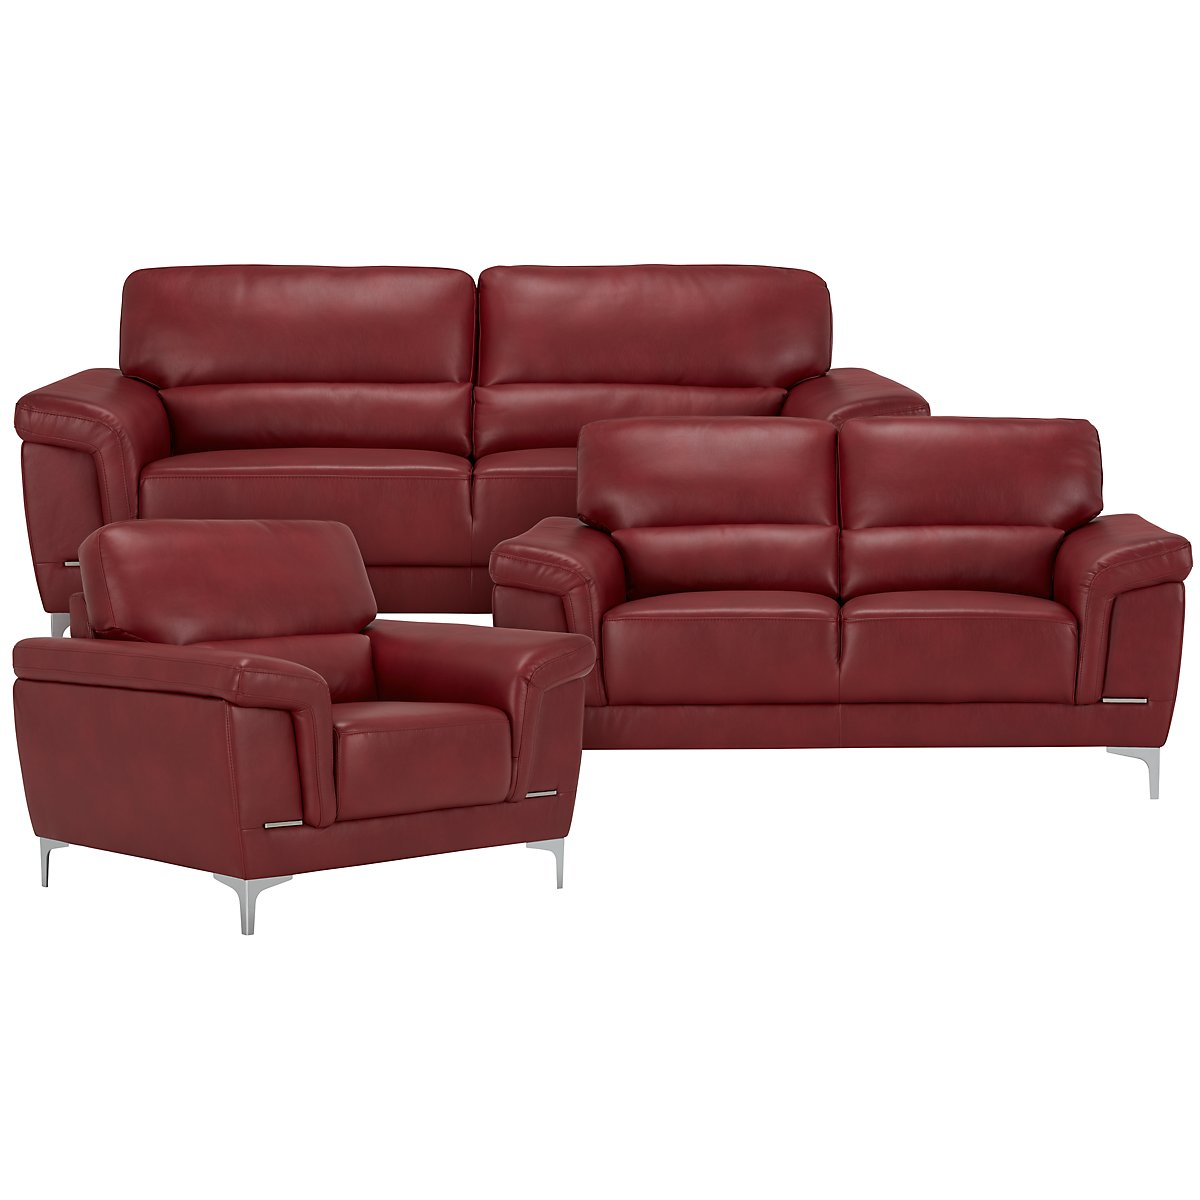 Red Leather Living Room Sets City Furniture Living Room Furniture Living Room Sets